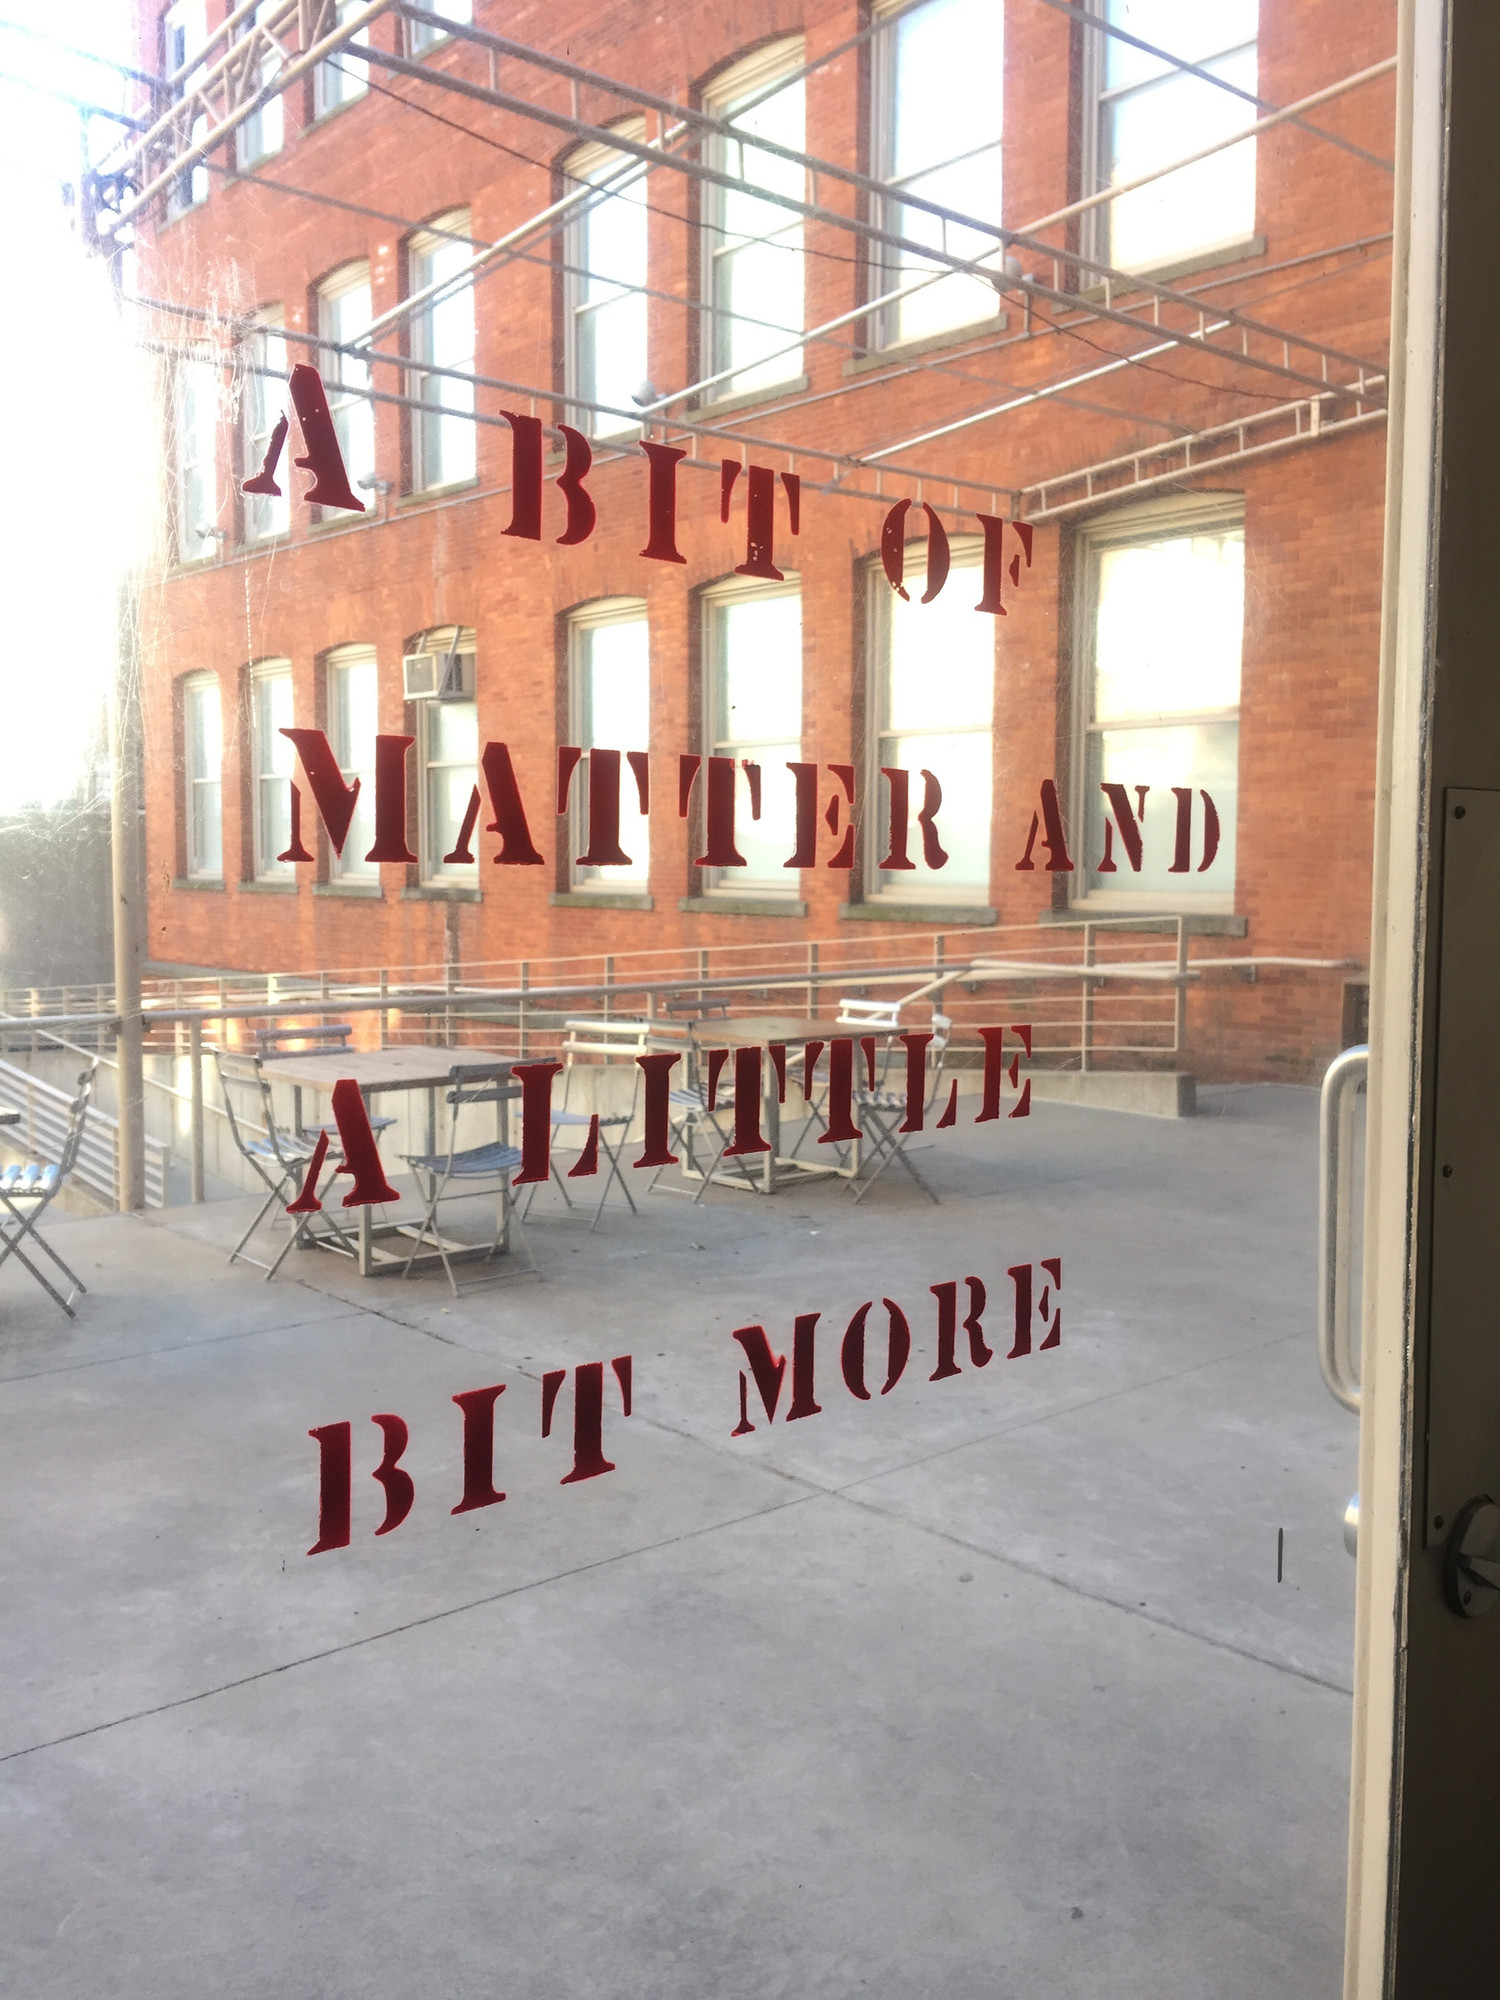 Lawrence Weiner. A BIT OF MATTER AND A LITTLE BIT MORE. 1976